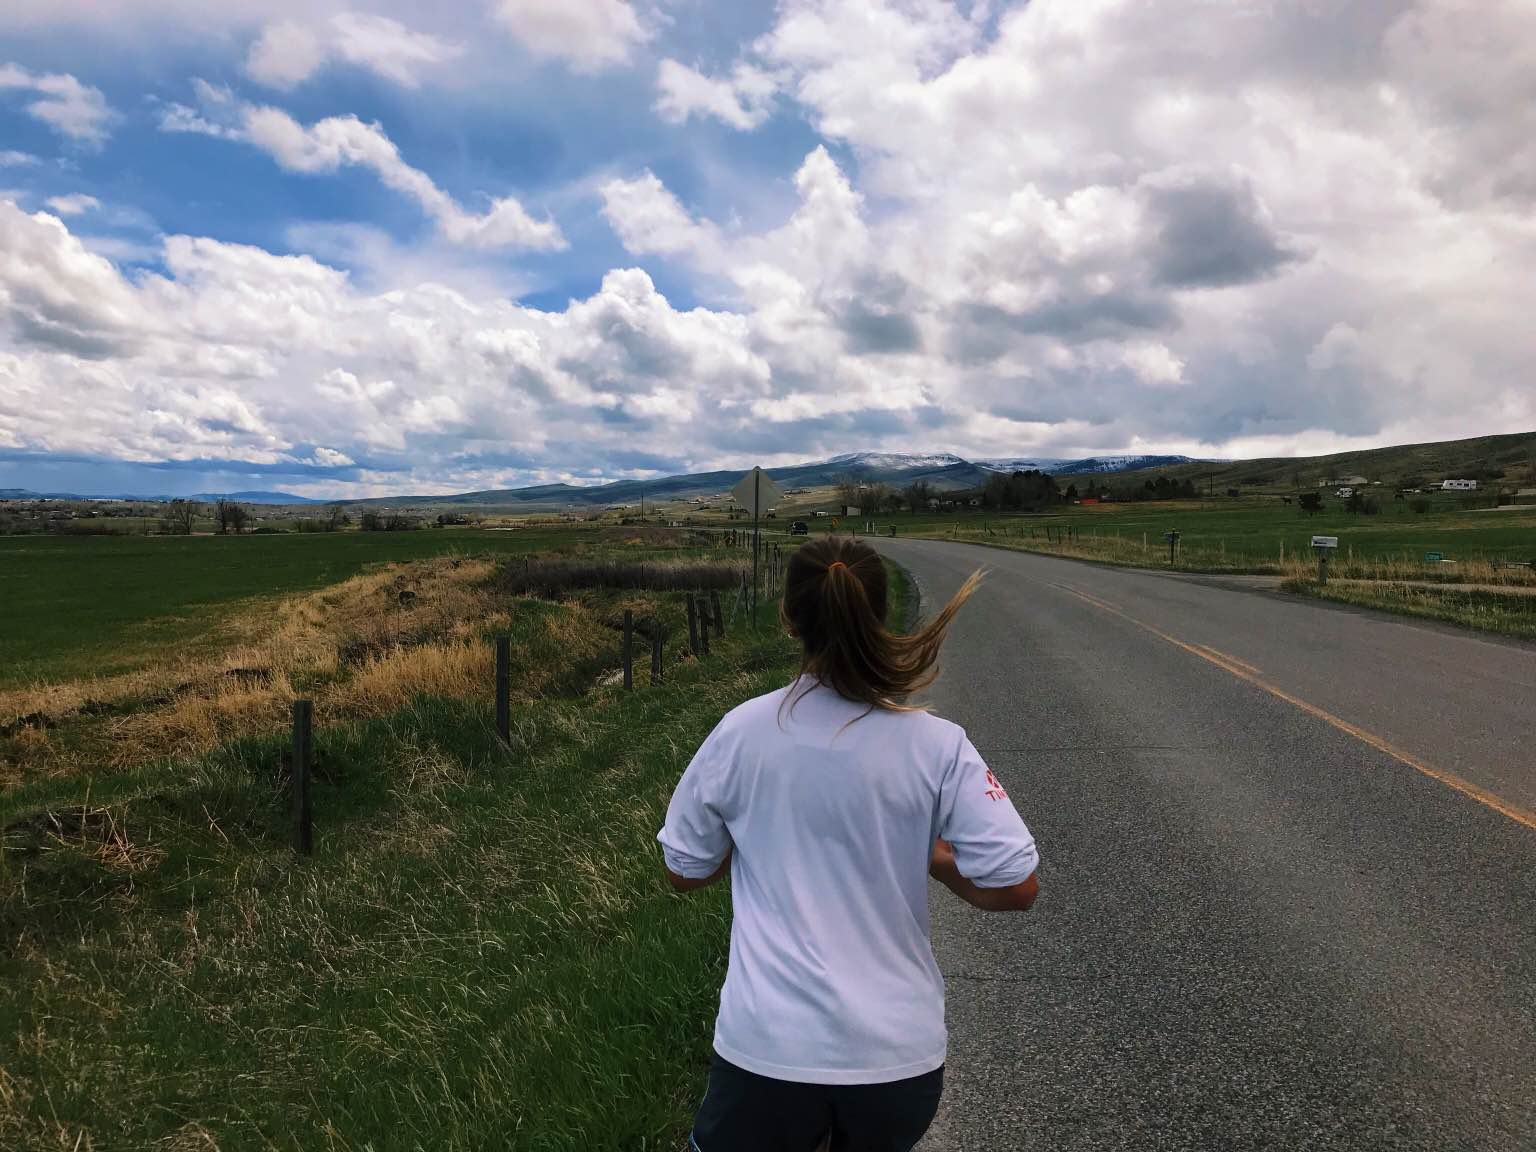 girl runs down a paved road with green fields on either side and dramatic clouds overhead